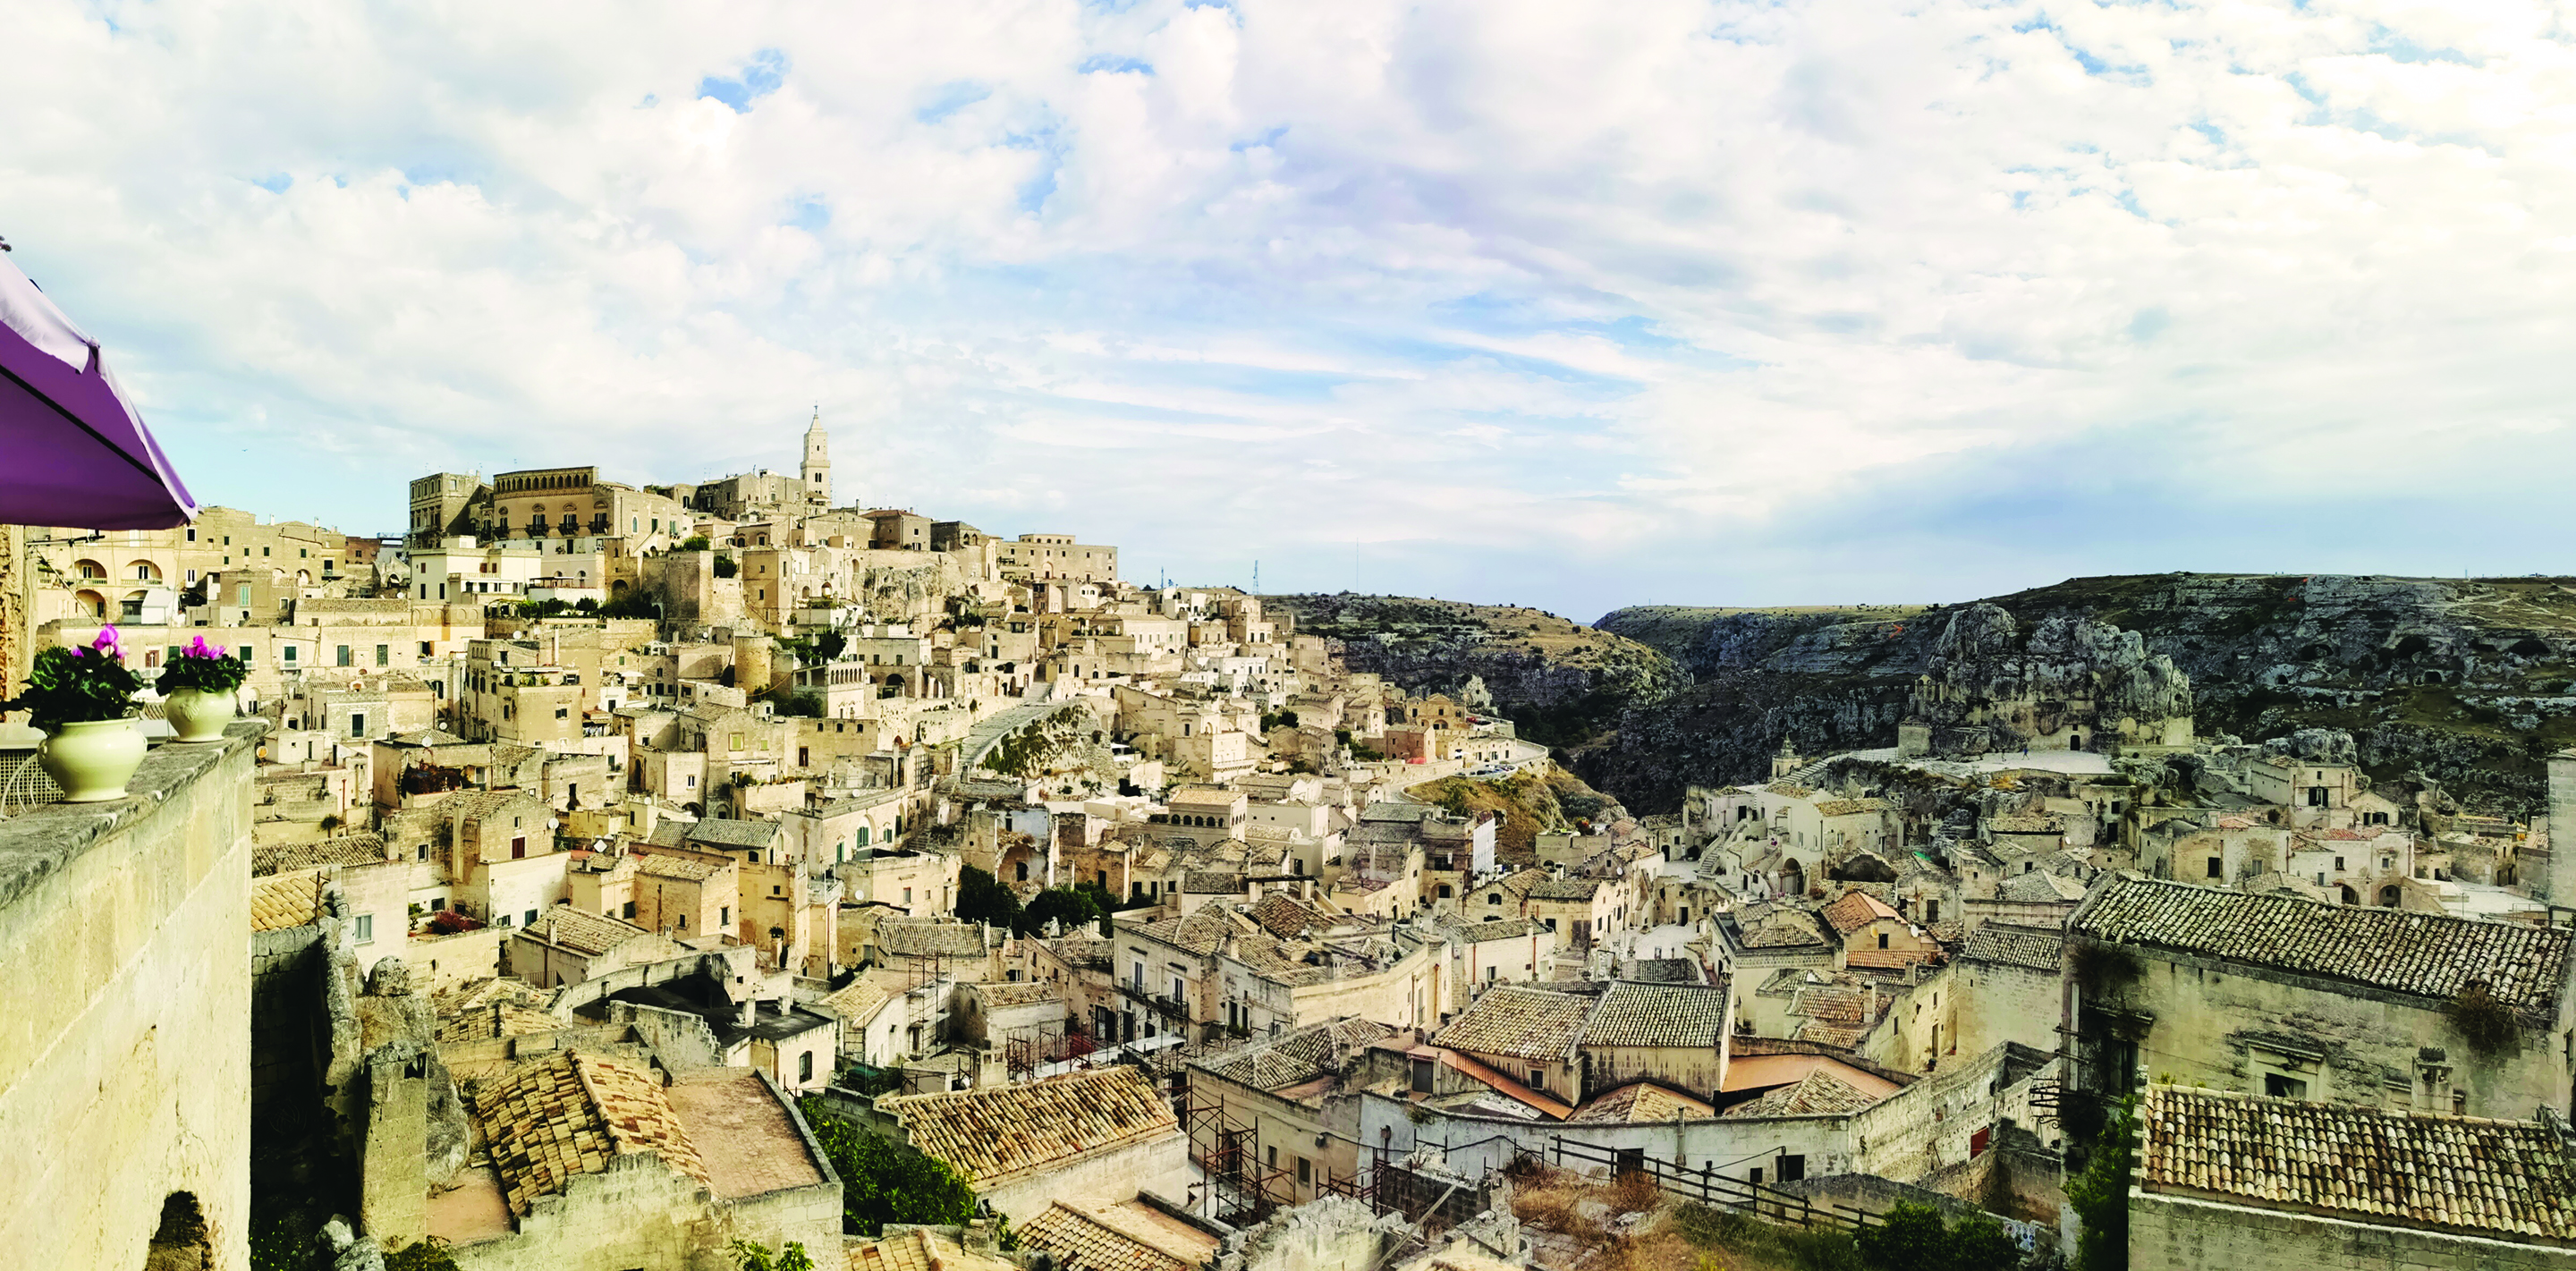 Matera's ancient Sassi town is a highlight in Riviera Travel's Puglia, Lecce & Vieste – Undiscovered Italy itinerary